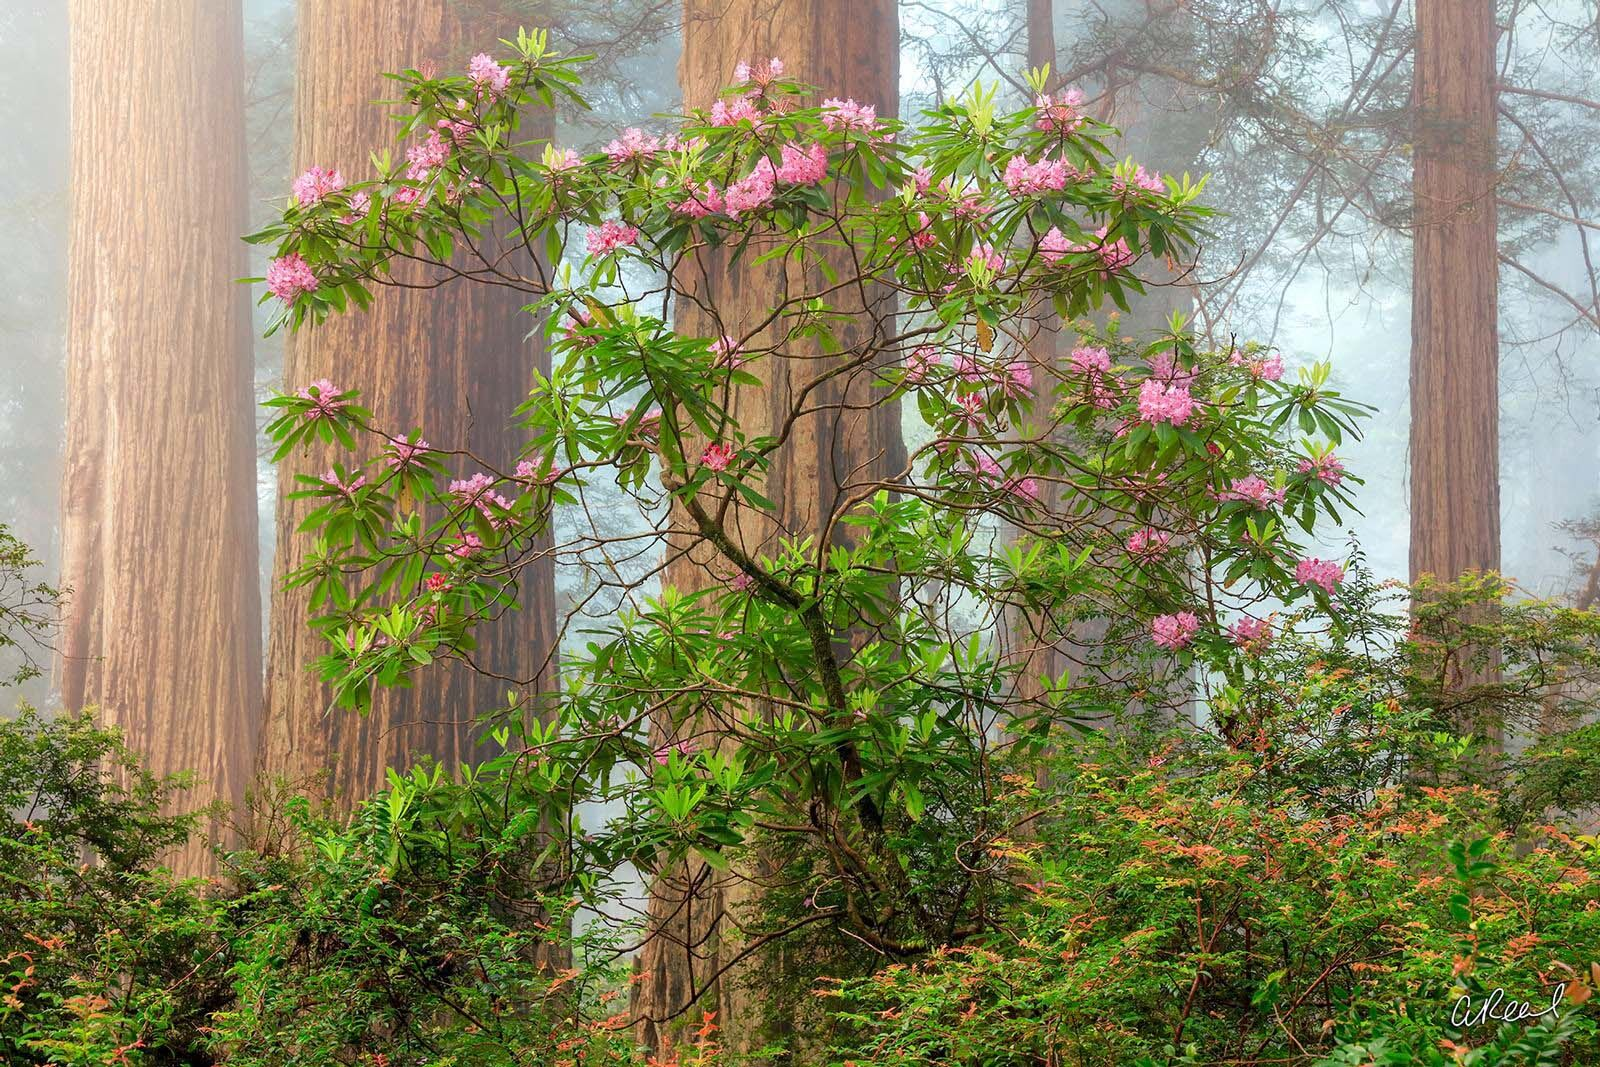 A grove of redwood trees in the fog and flowers inside Damnation Creek in California.